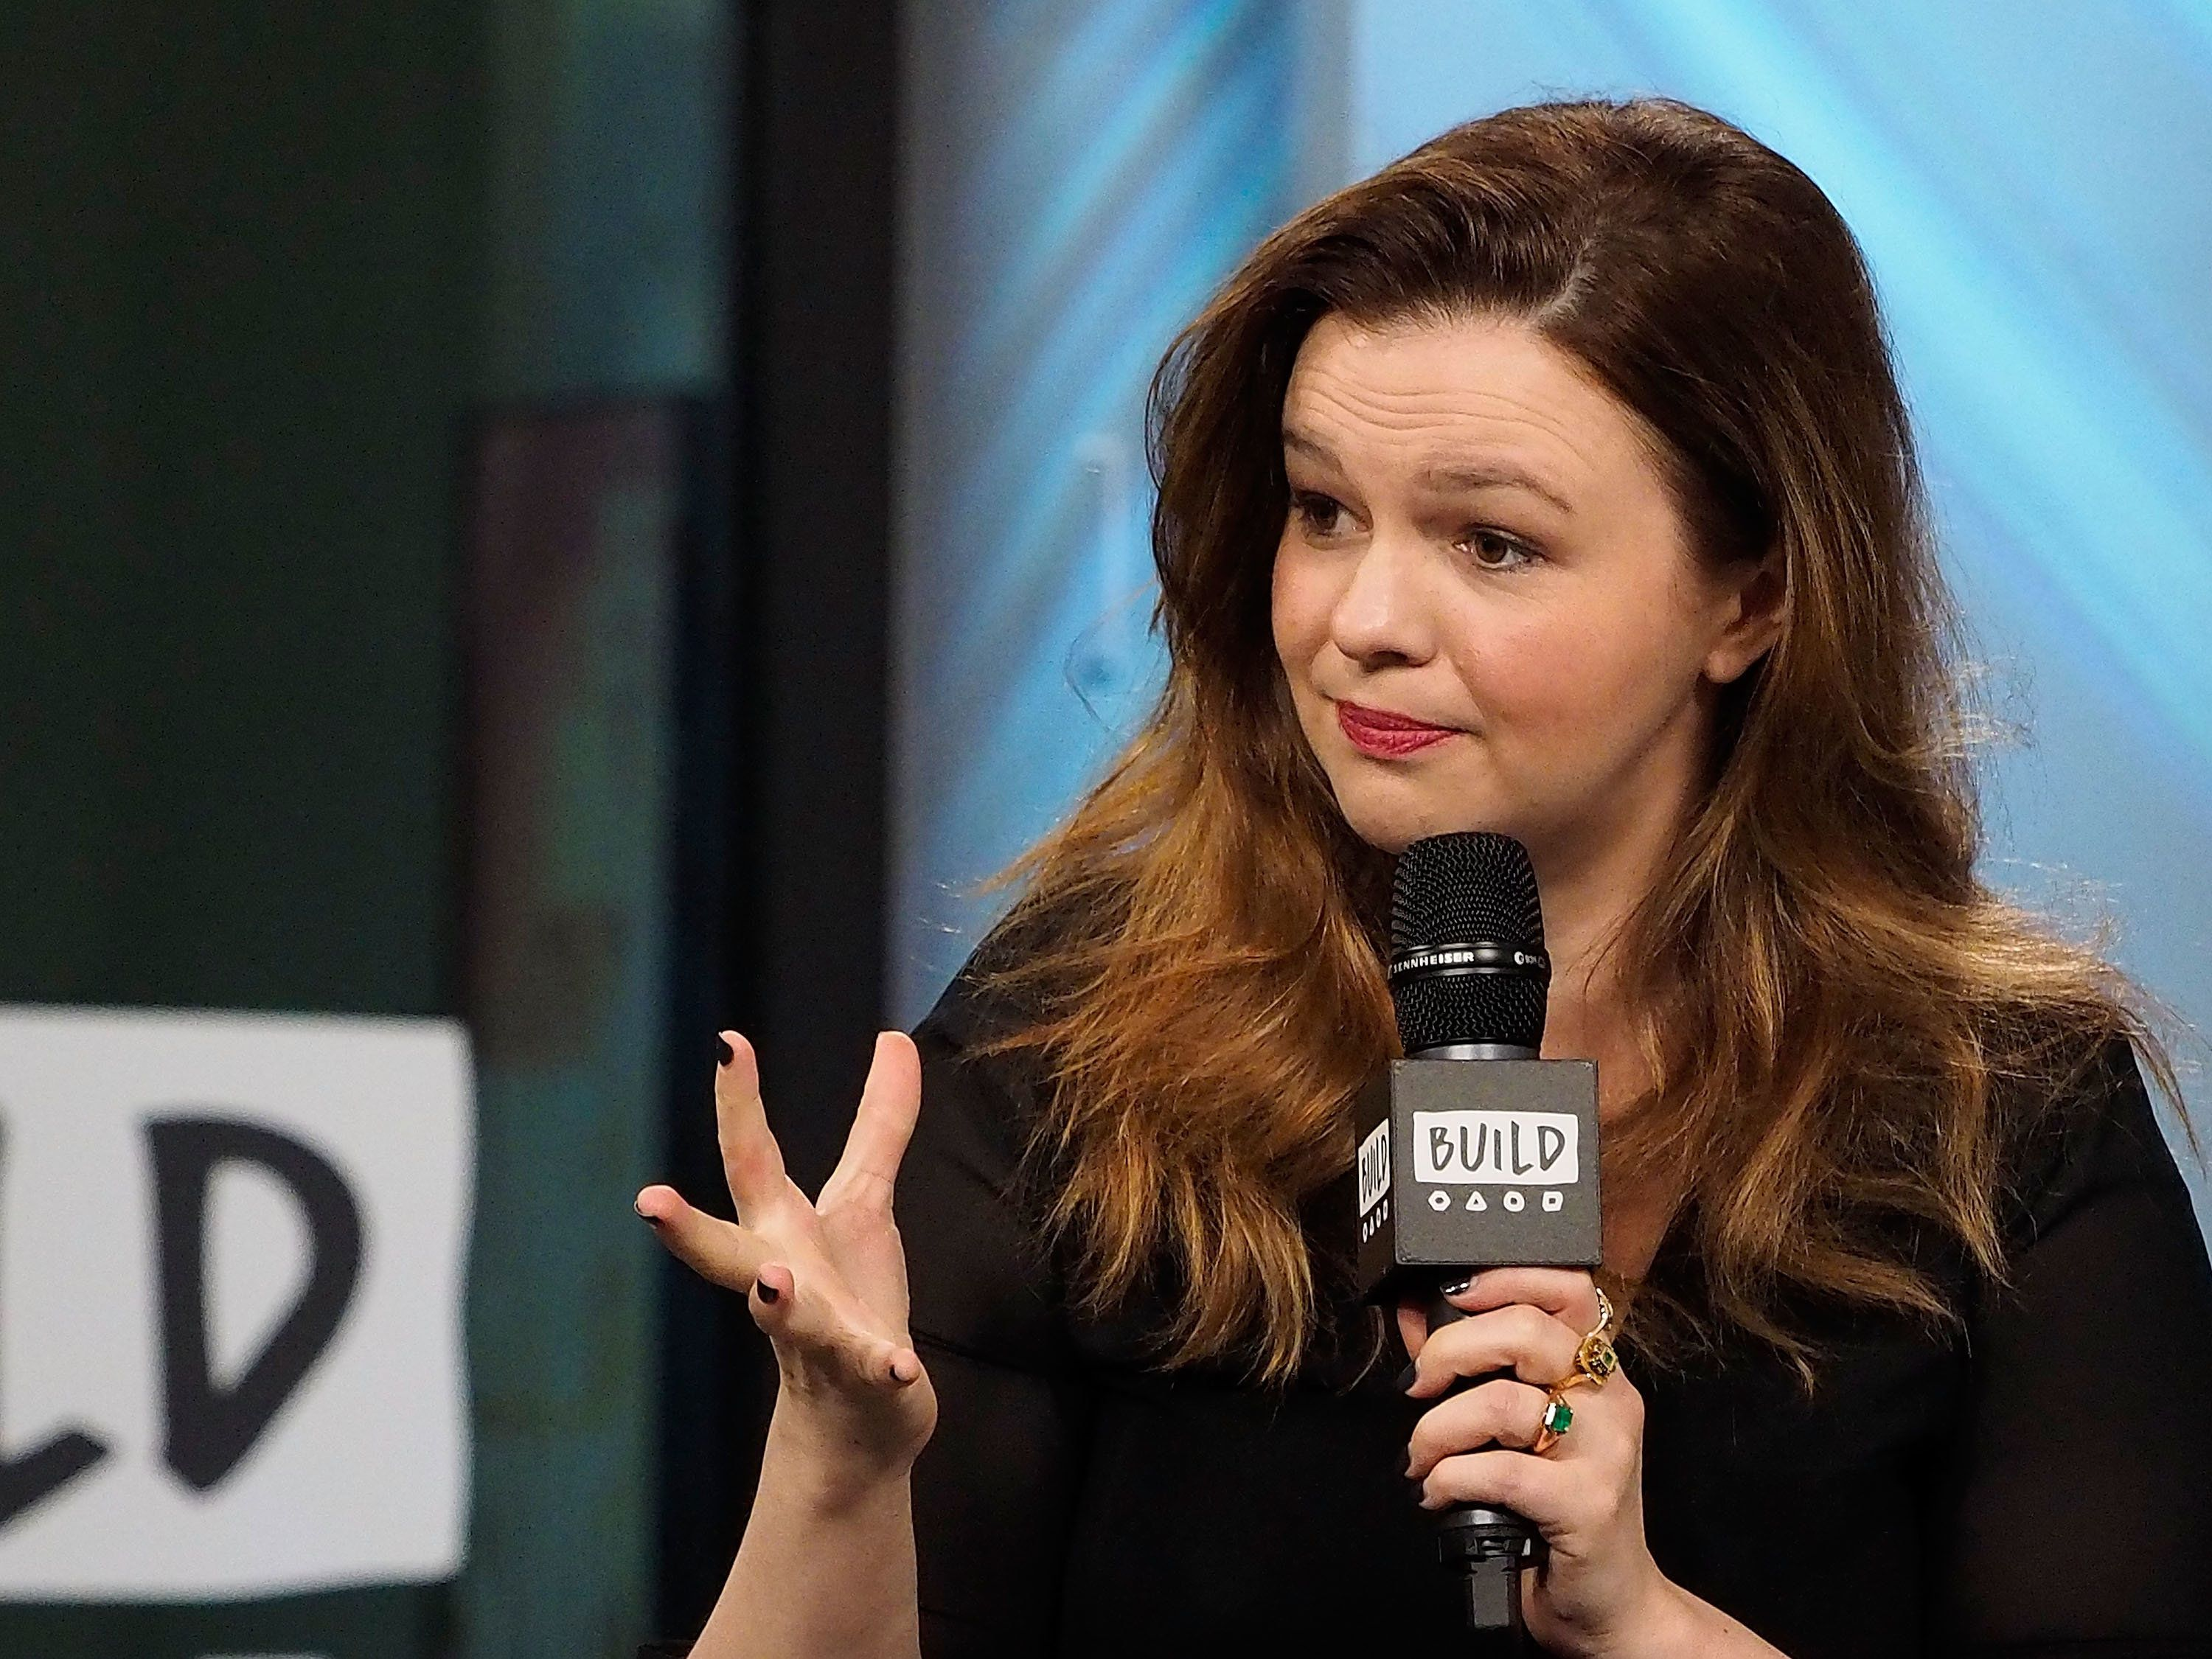 NEW YORK, NY - MAY 05:  Build Presents Amber Tamblyn discussing her Off-Broadway debut in 'Can You Forgive Her?' at Build Studio on May 5, 2017 in New York City.  (Photo by Manny Carabel/FilmMagic)